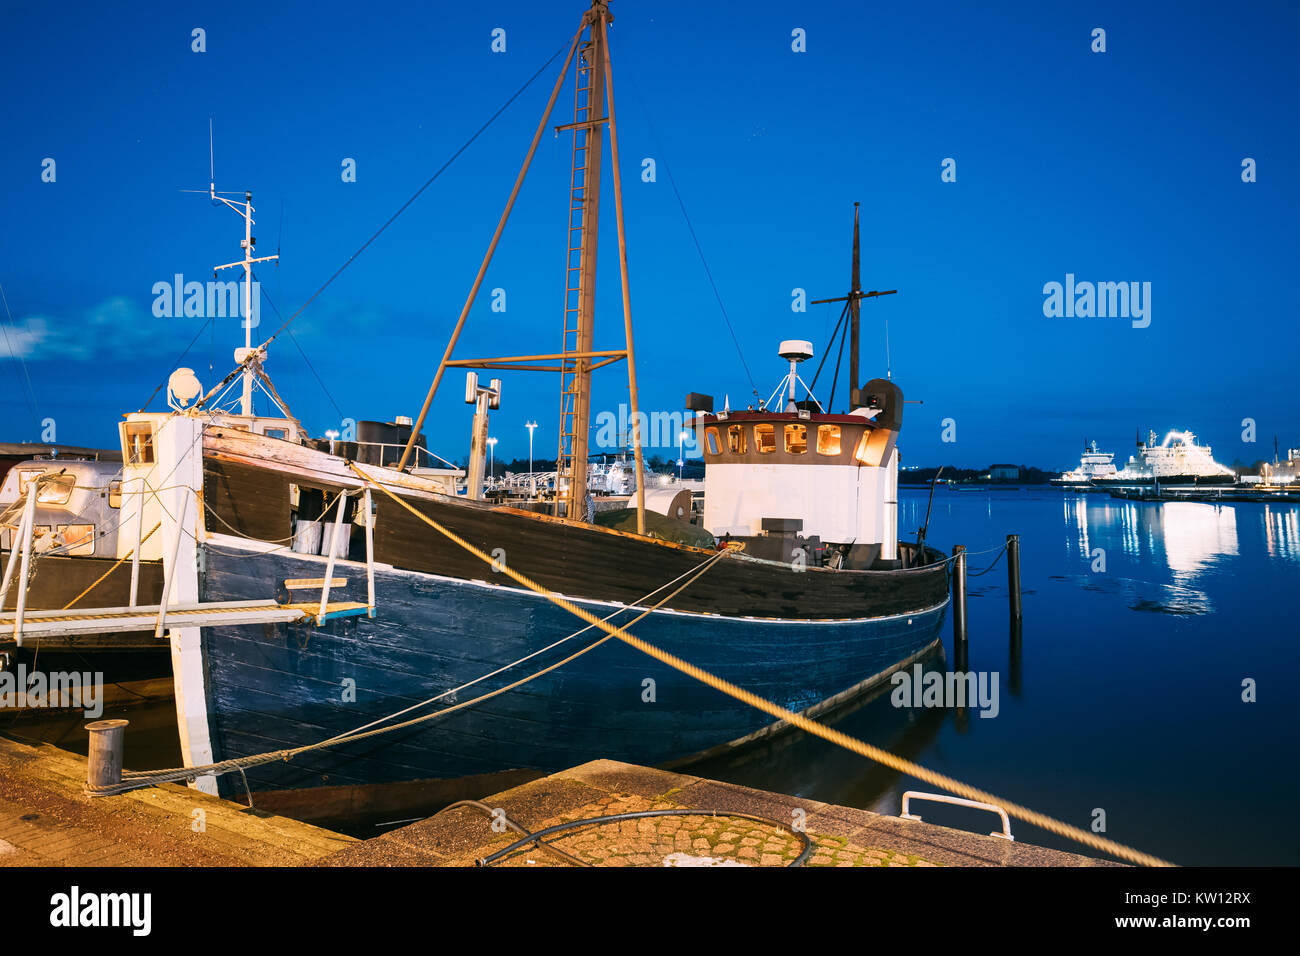 Helsinki, Finland. View Of Fishing Marine Boat, Powerboat At Pier In Evening Night Illuminations. - Stock Image